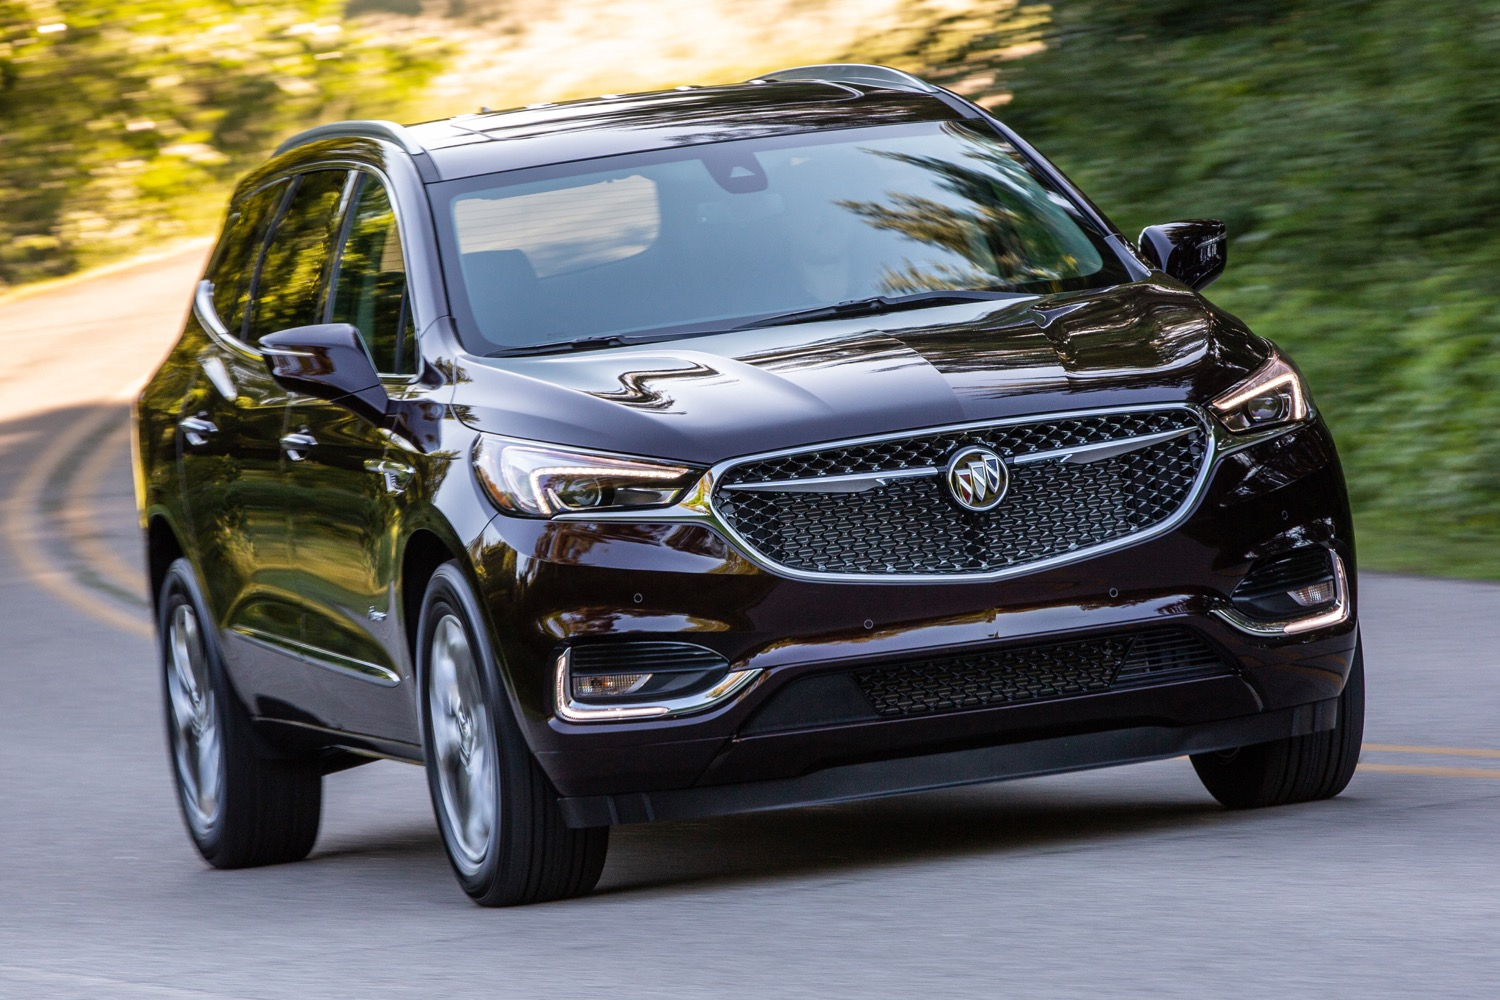 2020 Buick Enclave Avenir Styling Updates On Display | Gm Does The 2022 Buick Enclave Avenir Have Heads Up Display